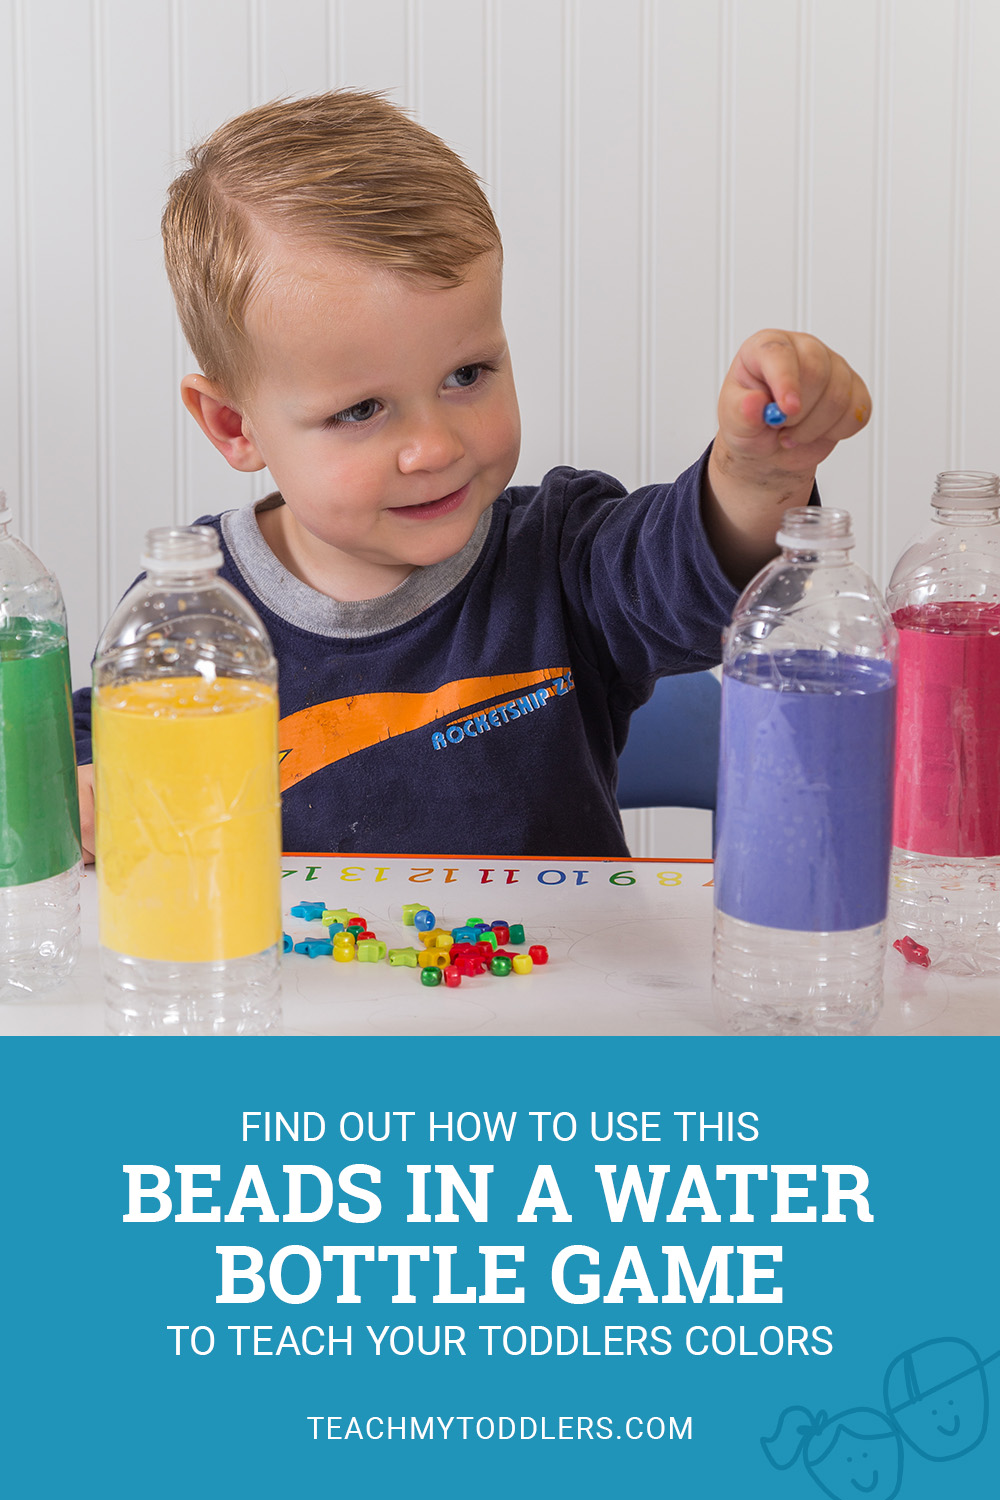 Find out how to use this beads in a water bottle game to teach toddlers colors